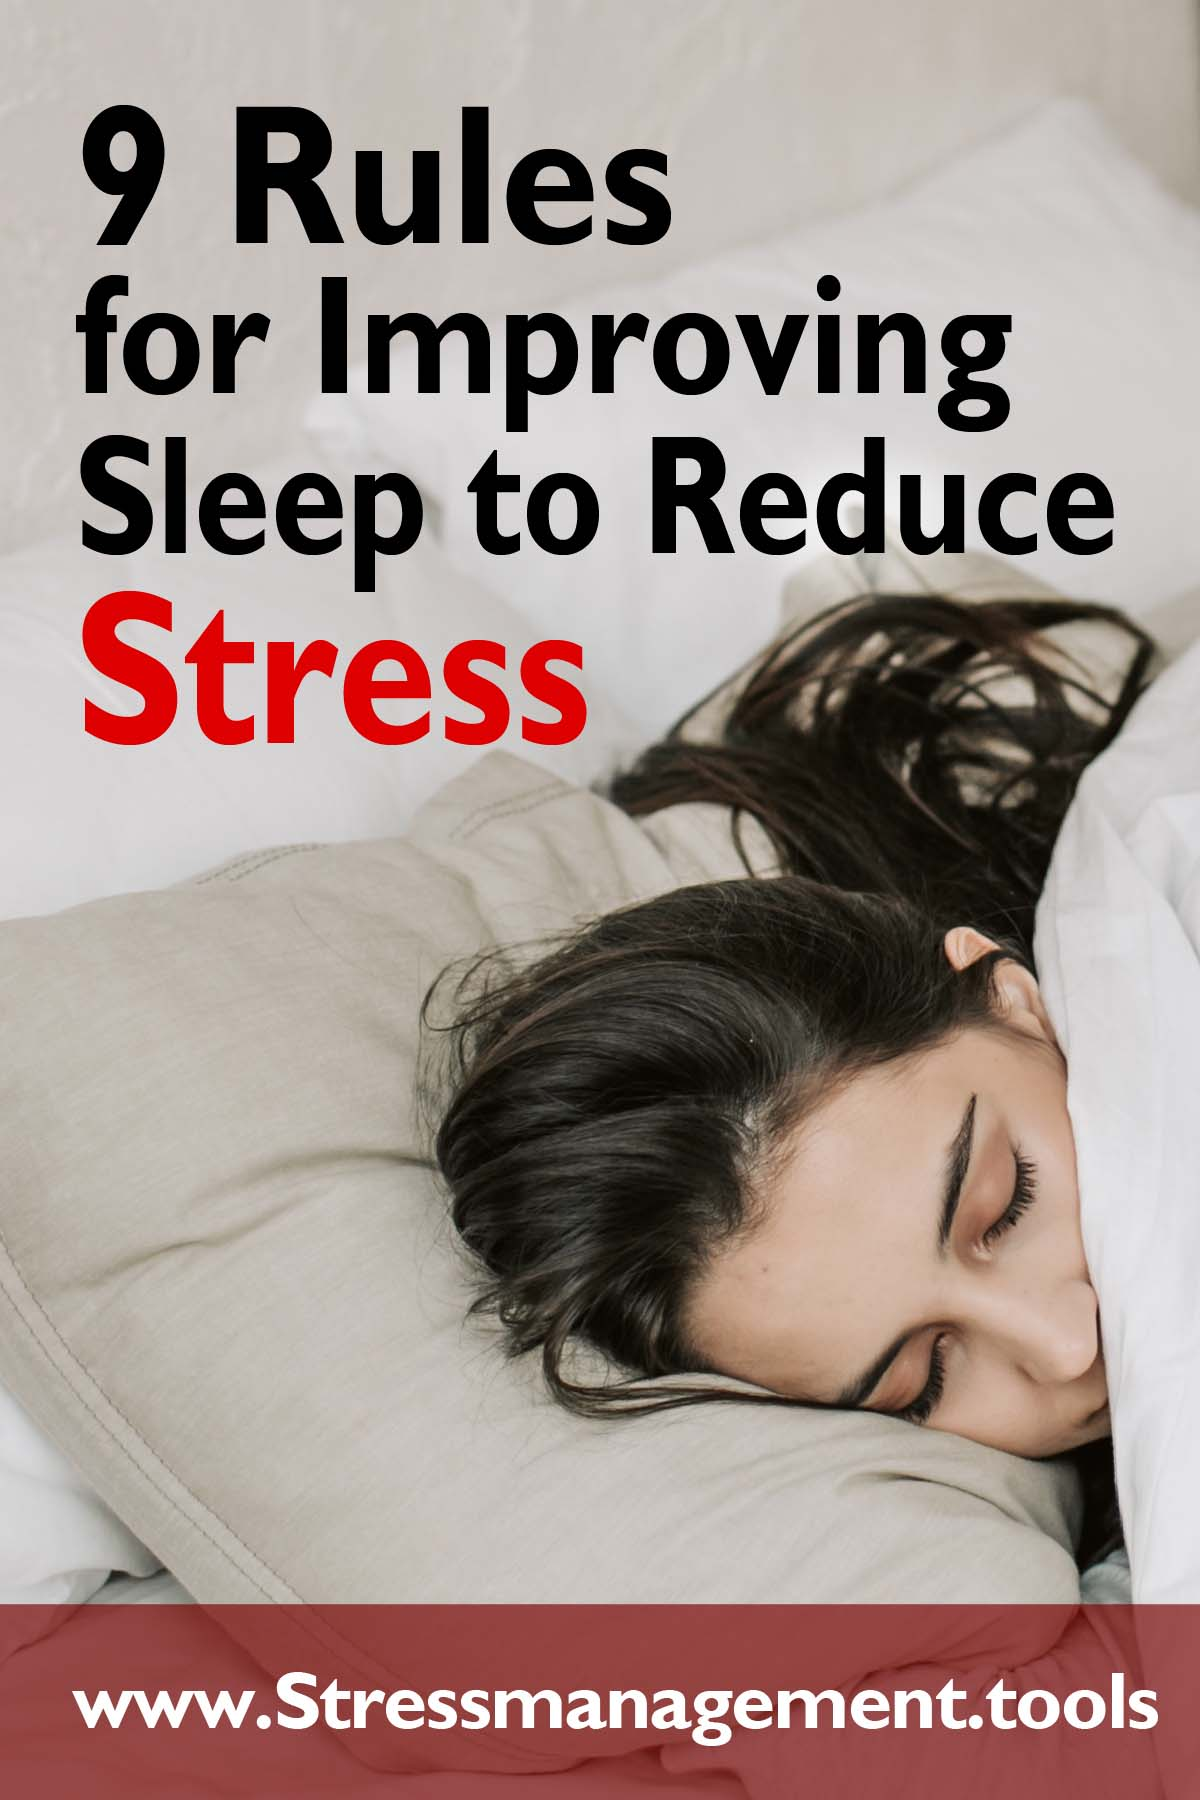 9 Rules for Improving Sleep to Reduce Stress